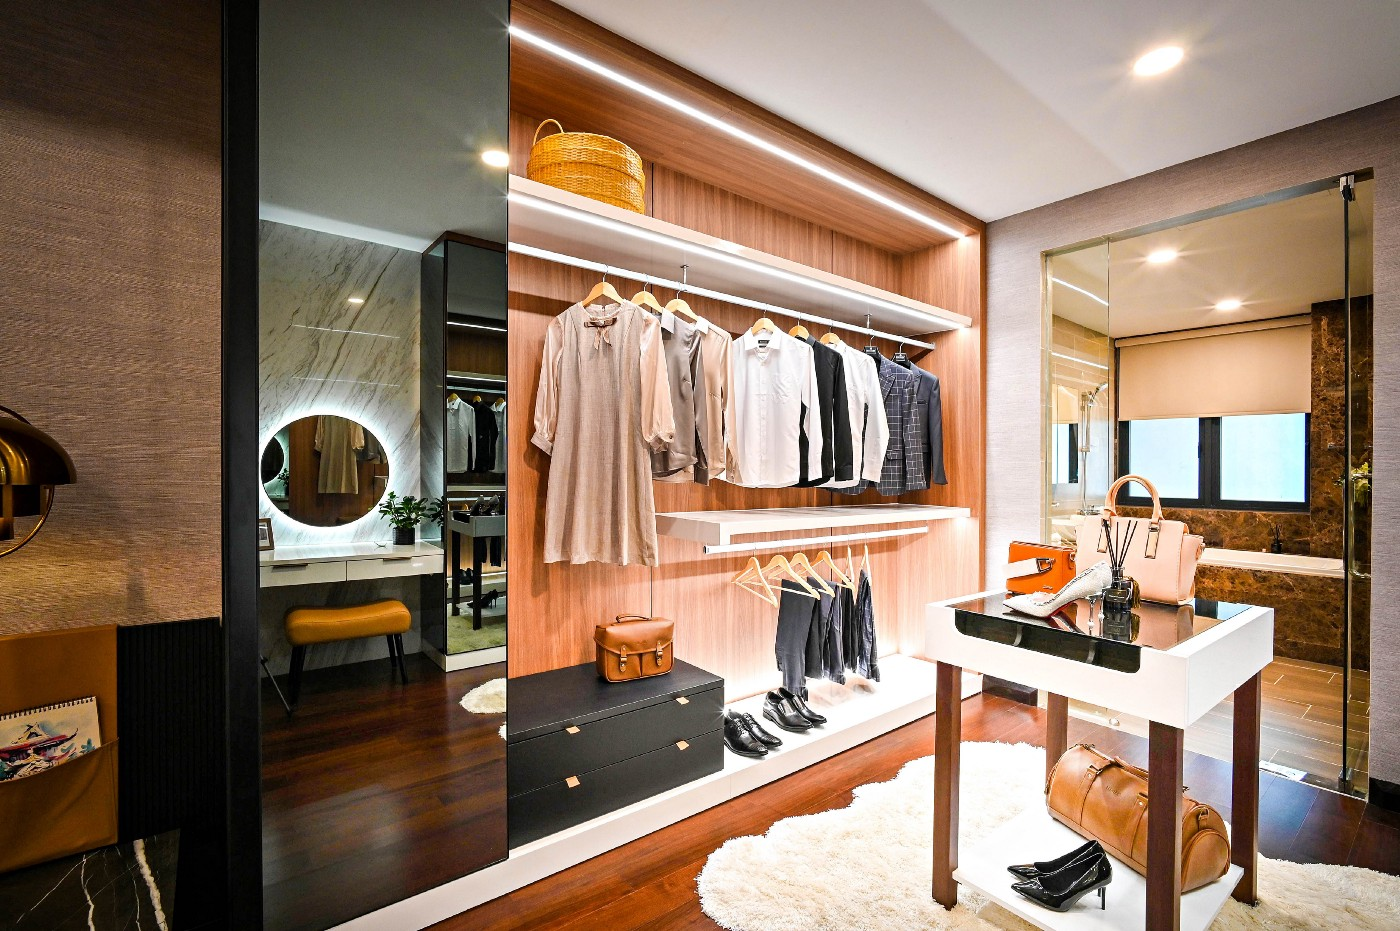 Picture of a closet with clothes and shoes